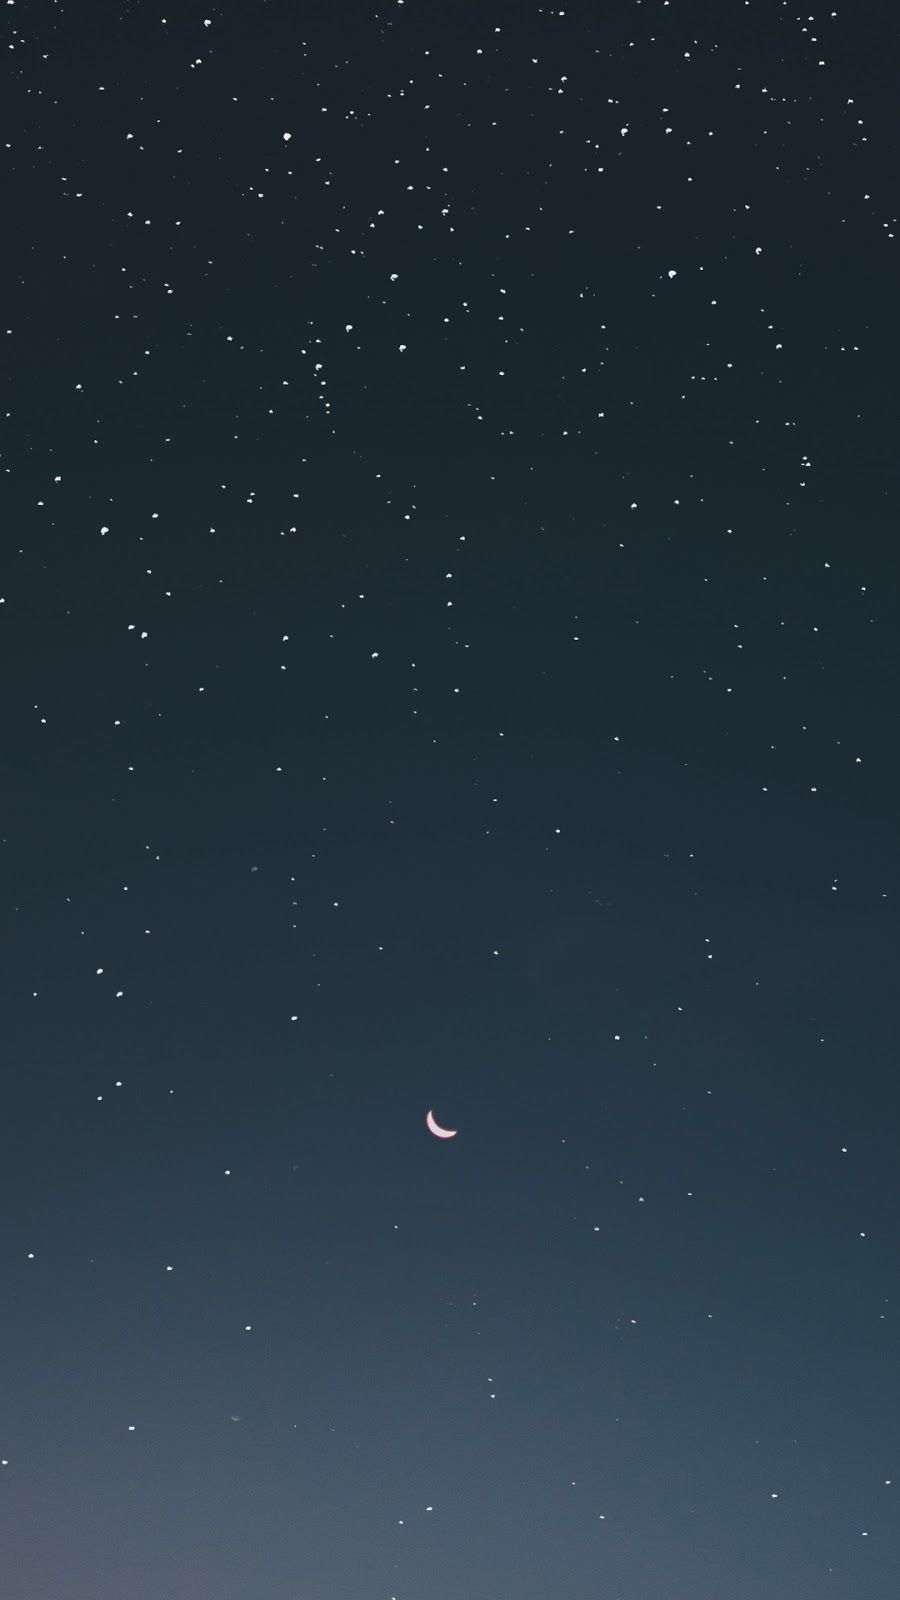 In The Night Sky Wallpaper Iphone Android Background Followme Night Sky Wallpaper Star Wallpaper Beautiful Wallpapers